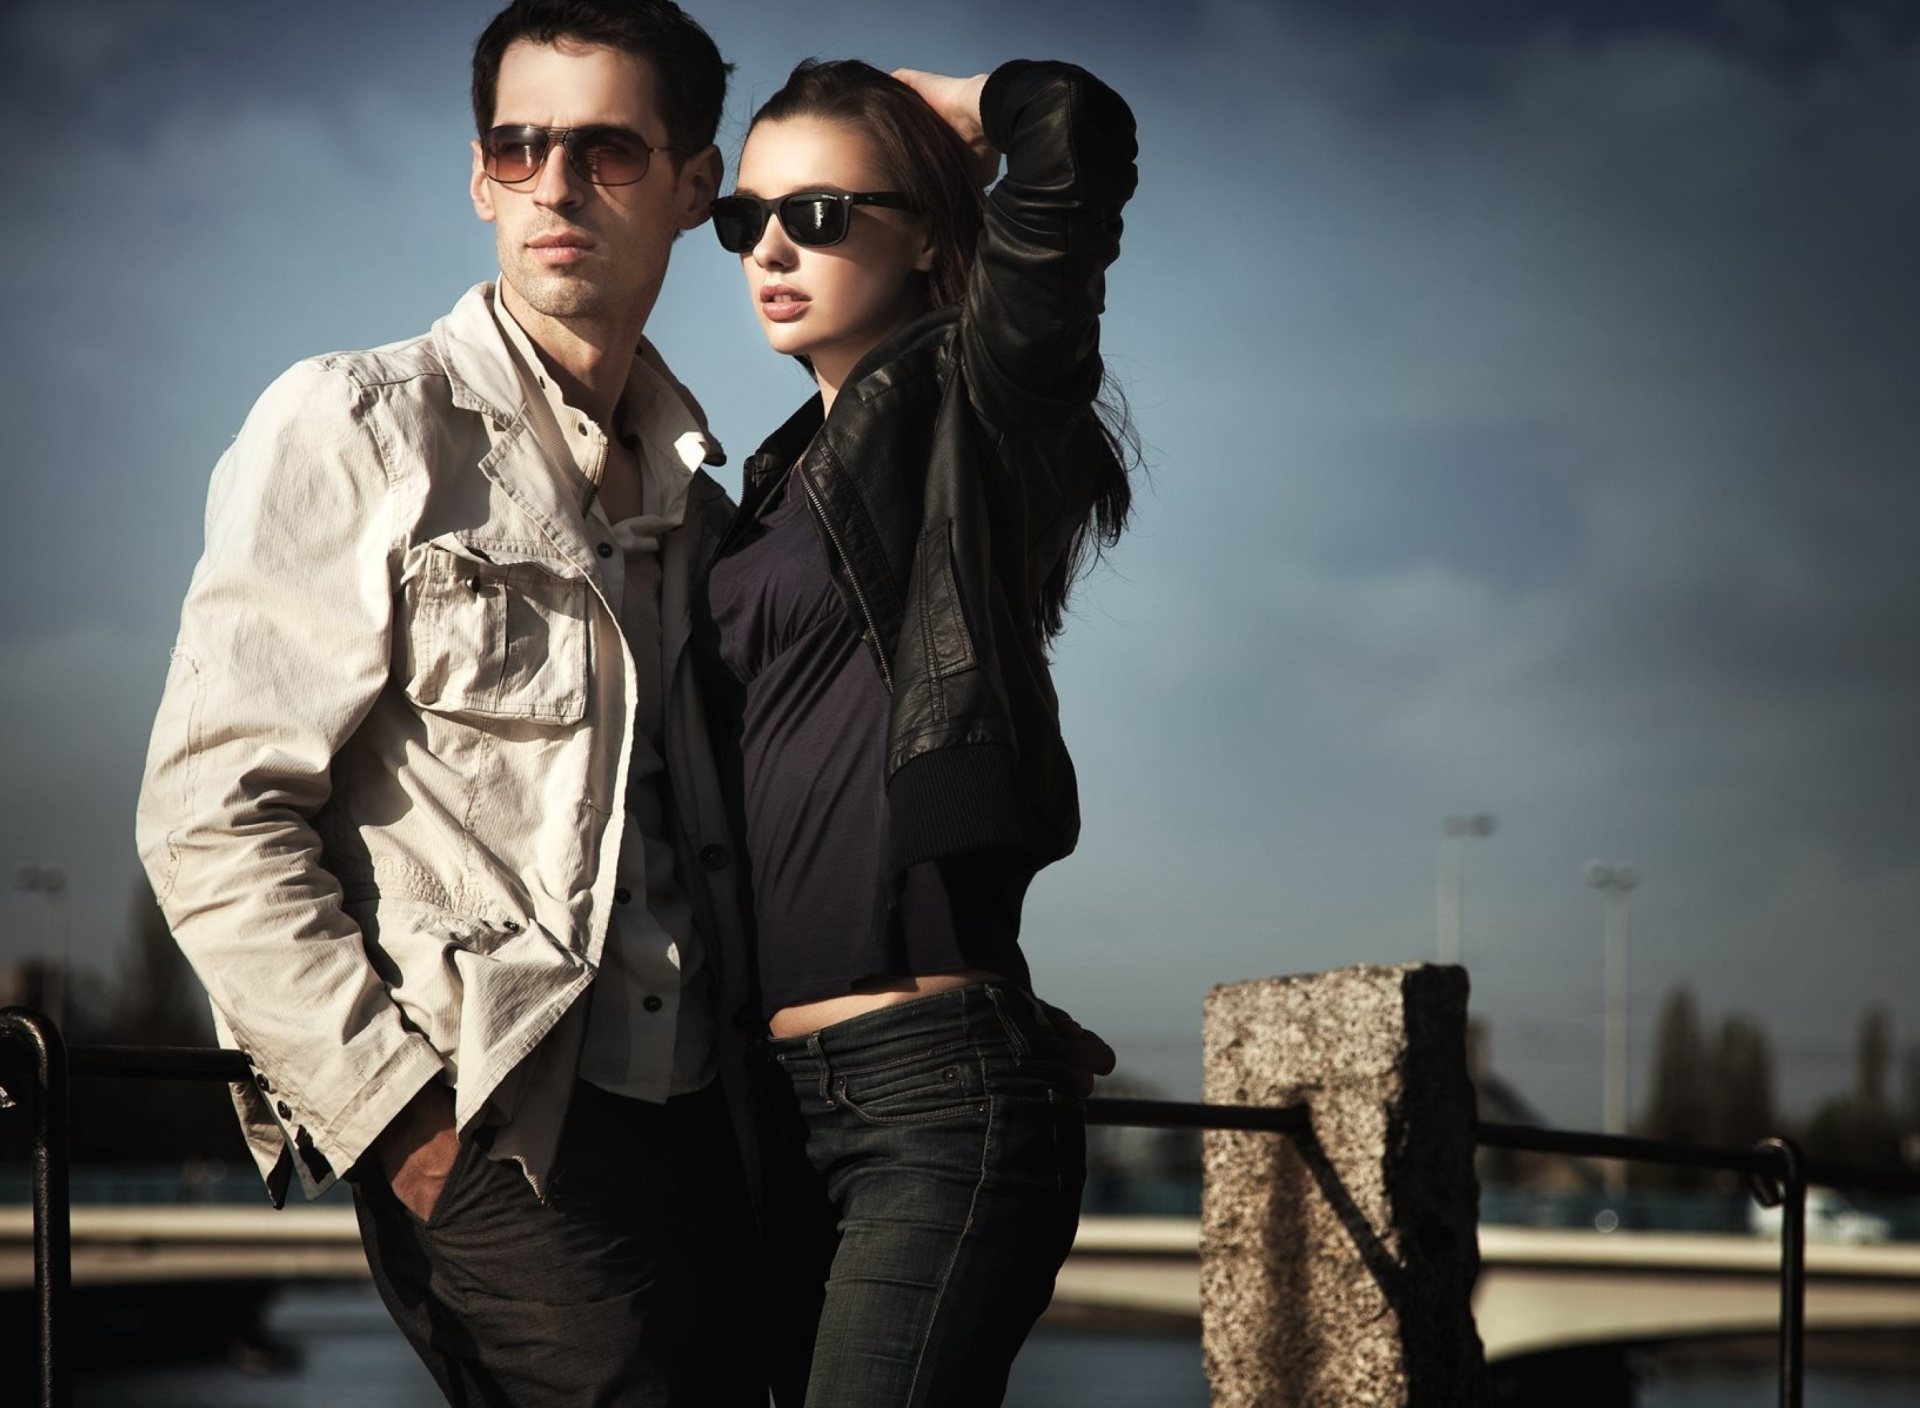 Couple portrait wallpaper 1920x1408